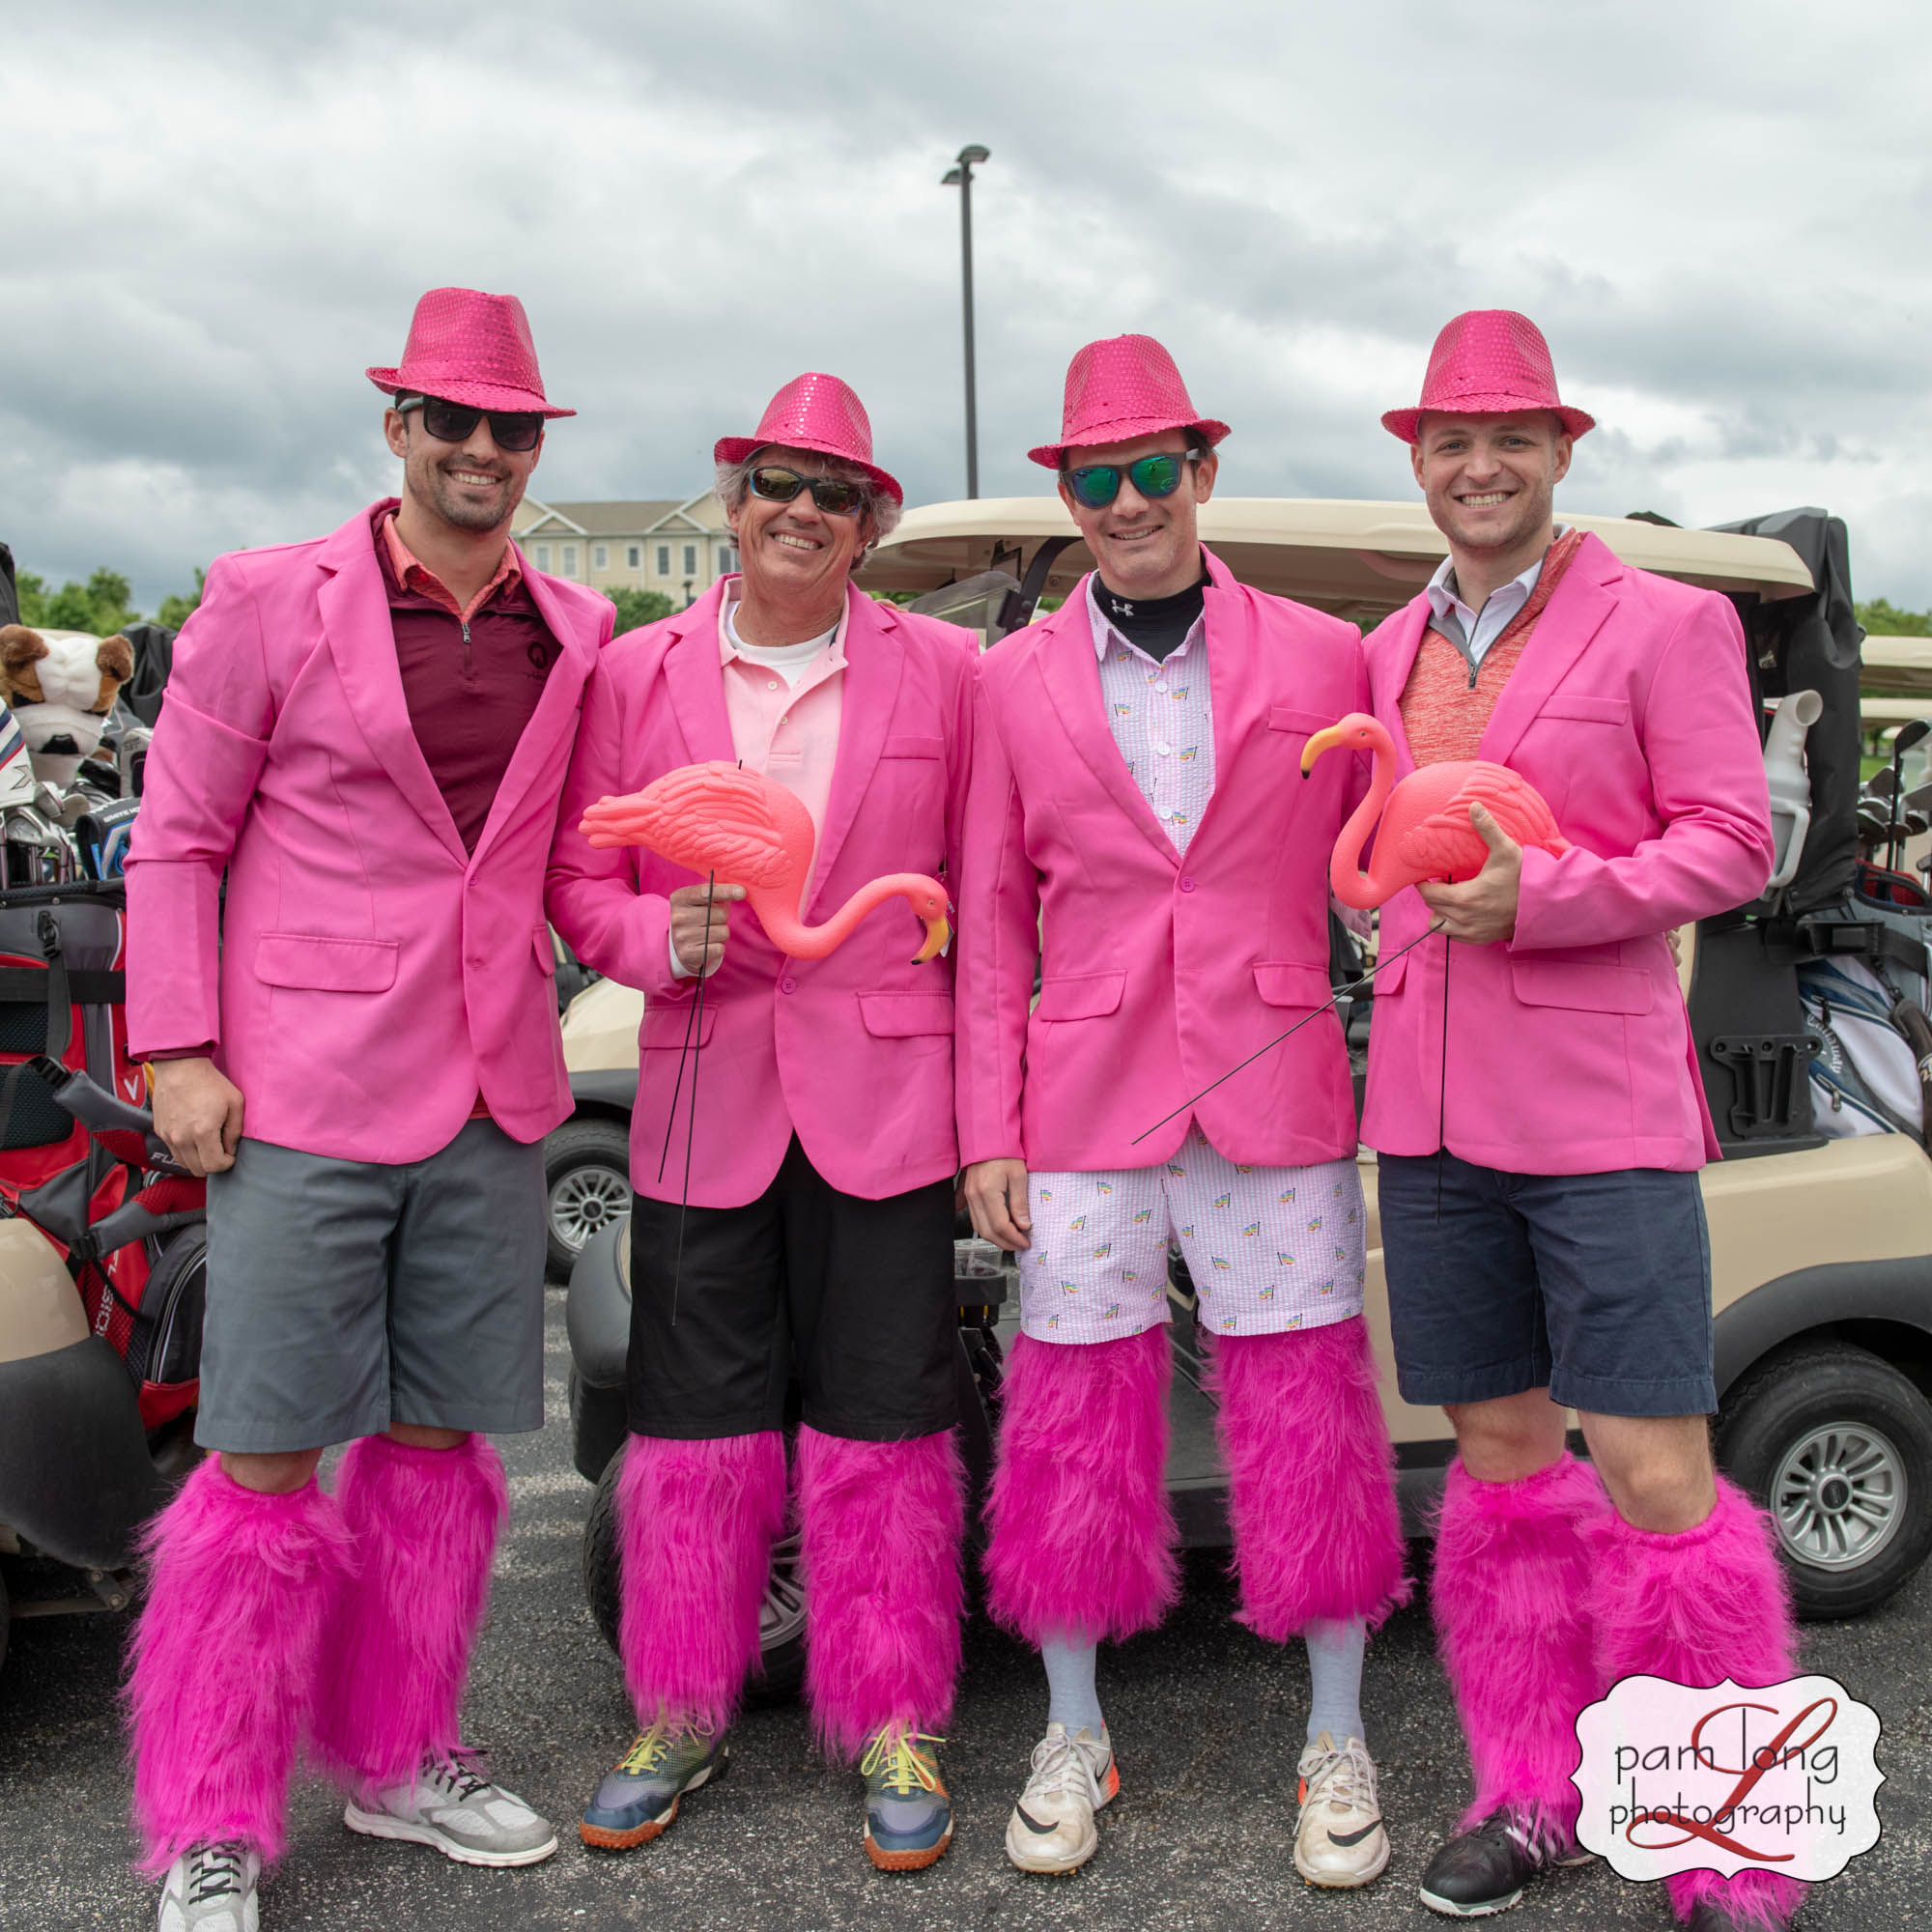 Pam Long Photography Blossoms of Hope Blossoms Pink Greens Golf Classic-14.jpg